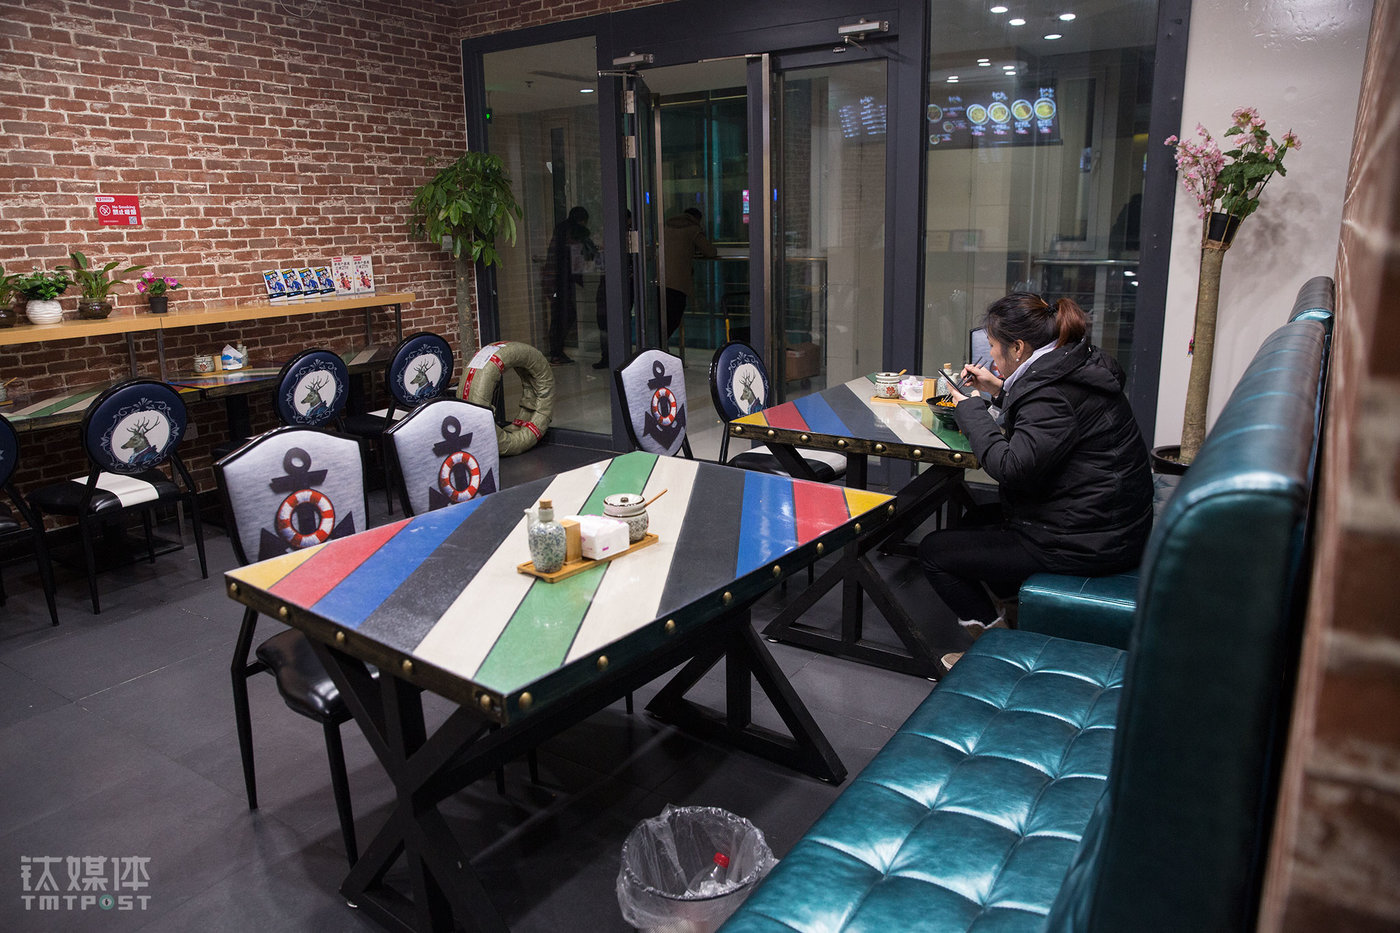 The restaurant has an eat-in space of 50 square meters, which is not crowded with customers for the most of the time. On January 22nd, only four customers came to the restaurant and ate in, two of which were actually the delivery guys.